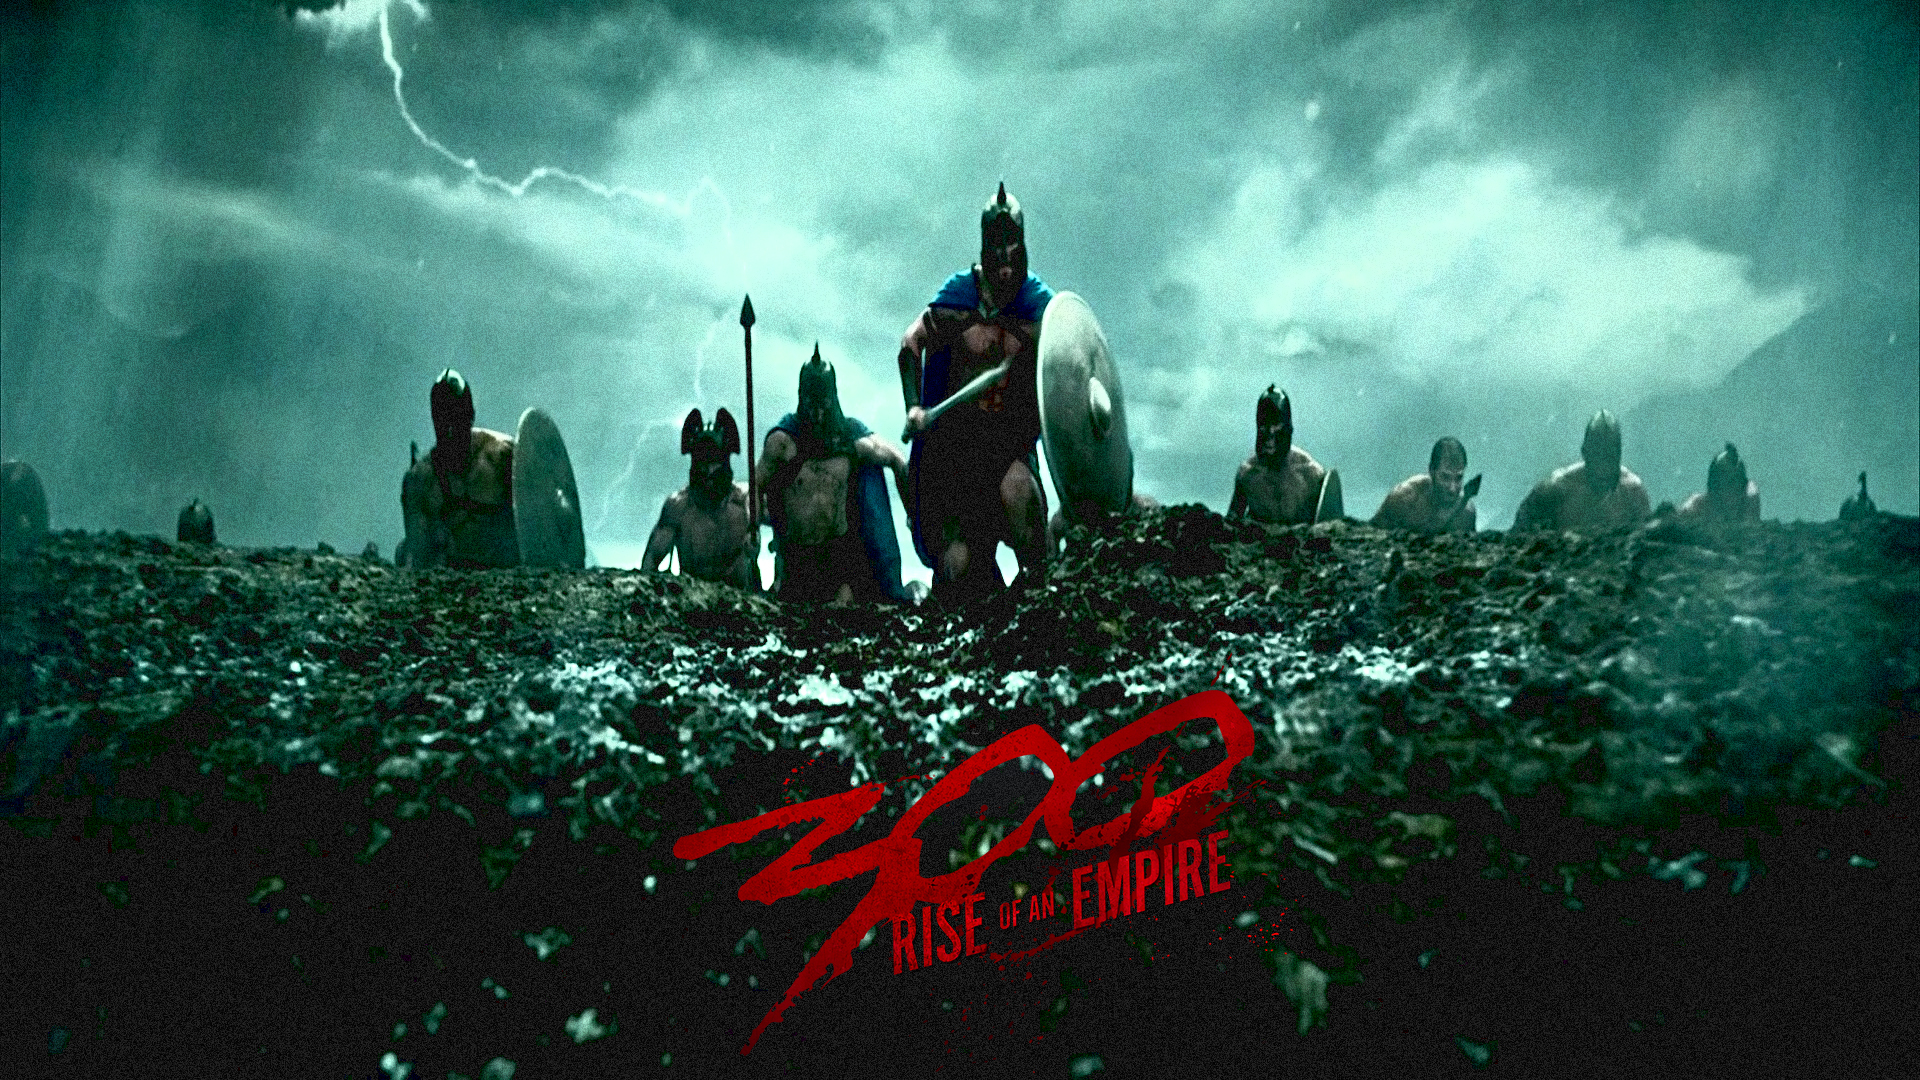 300-Rise-Of-An-Empire-wallpapers-6